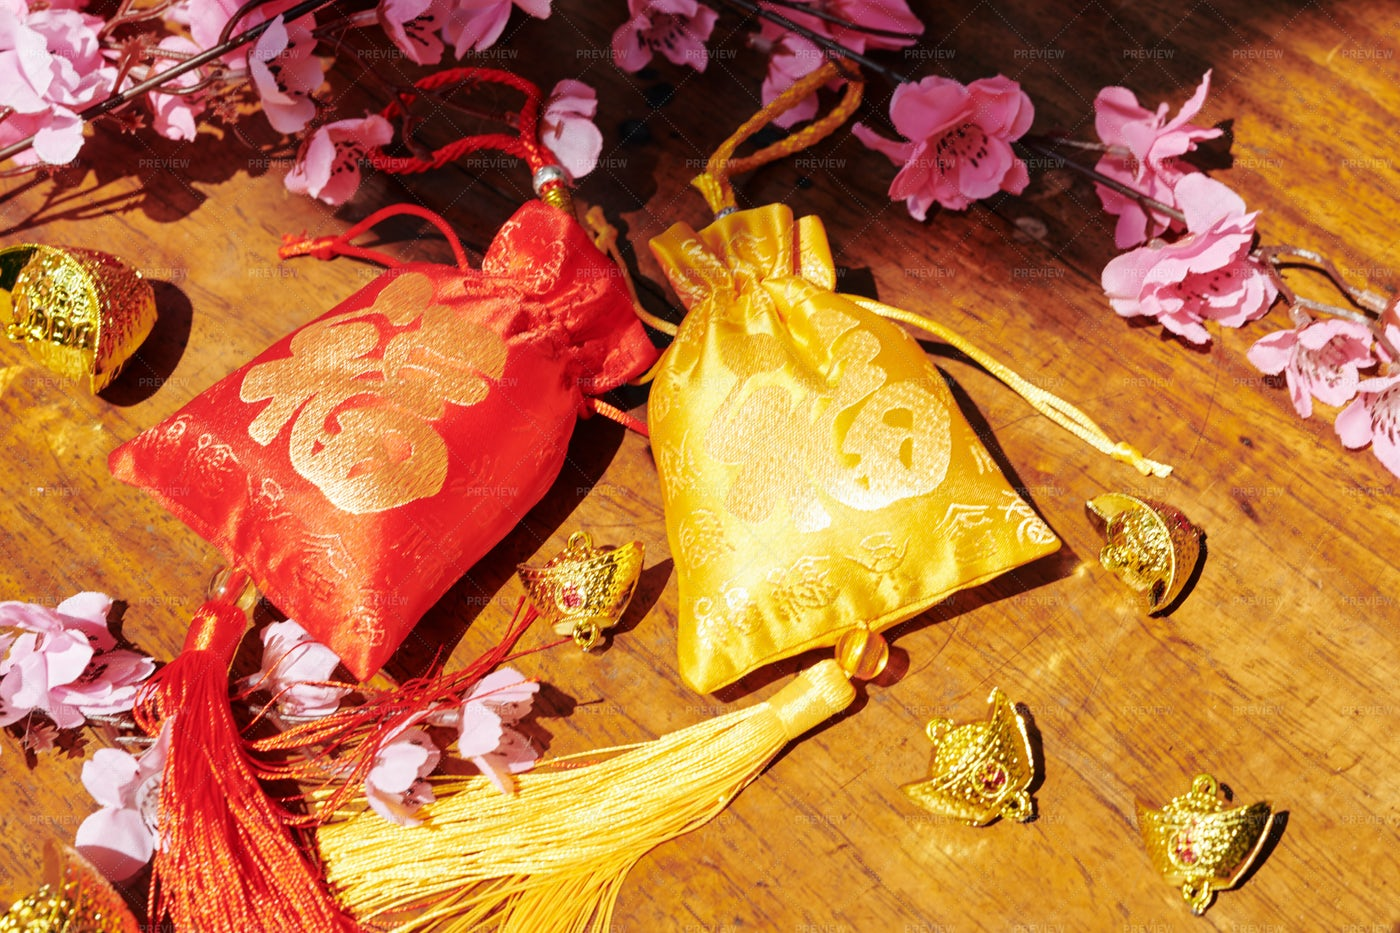 Fabric Bags For Lunar New Year: Stock Photos